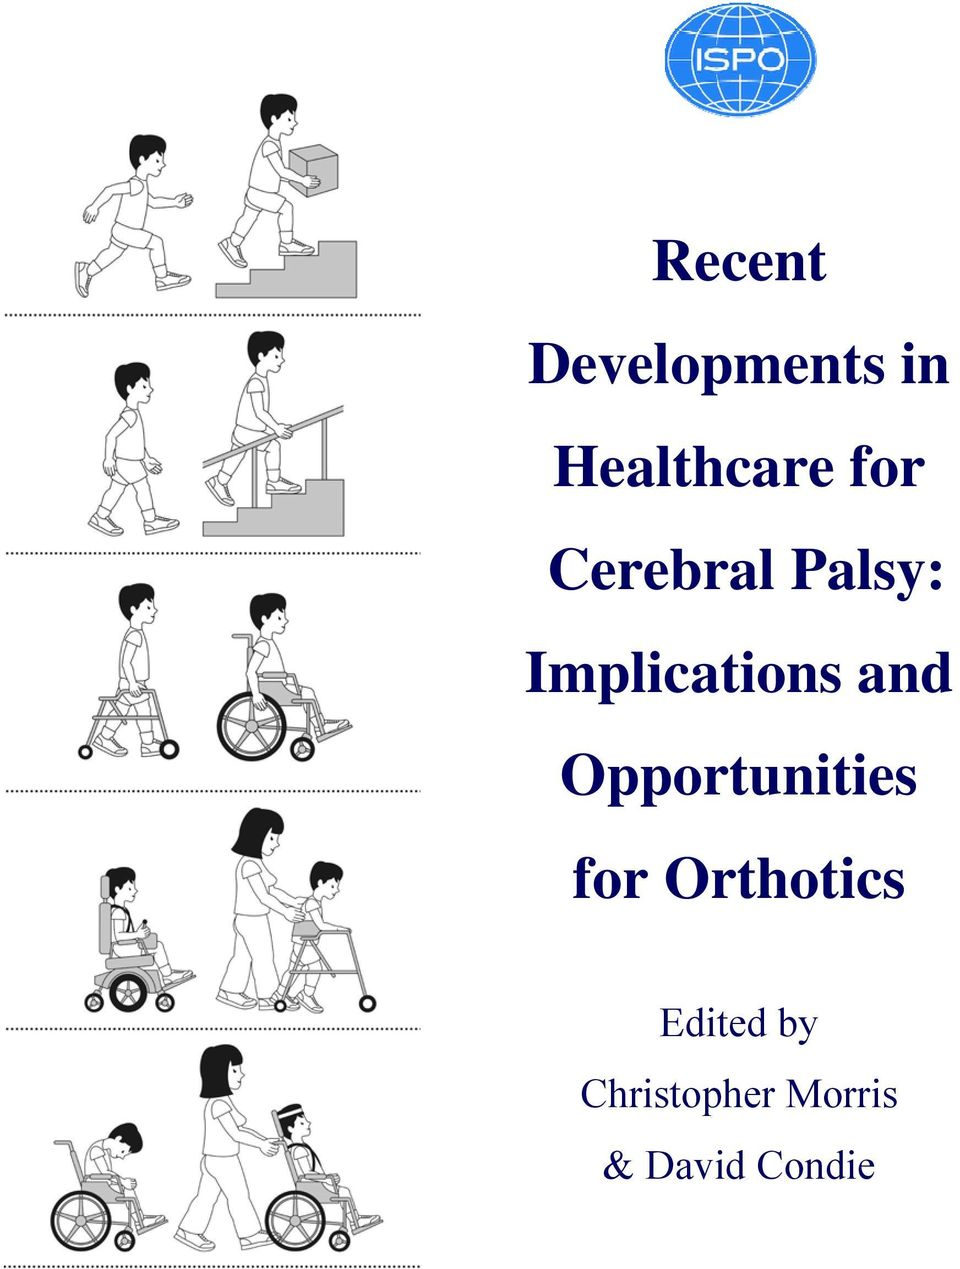 and Opportunities for Orthotics